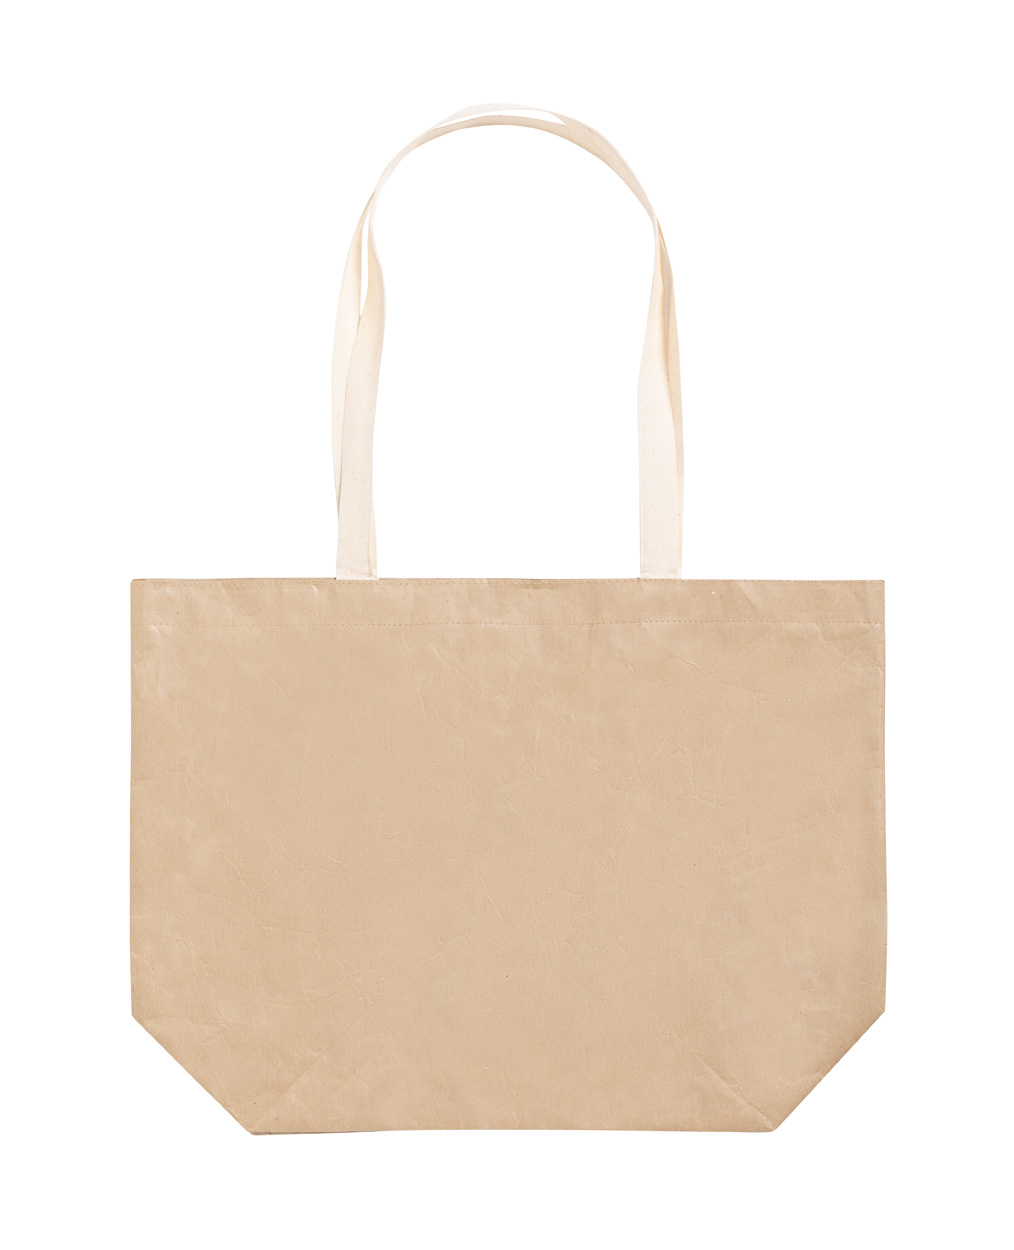 Palzim paper shopping bag